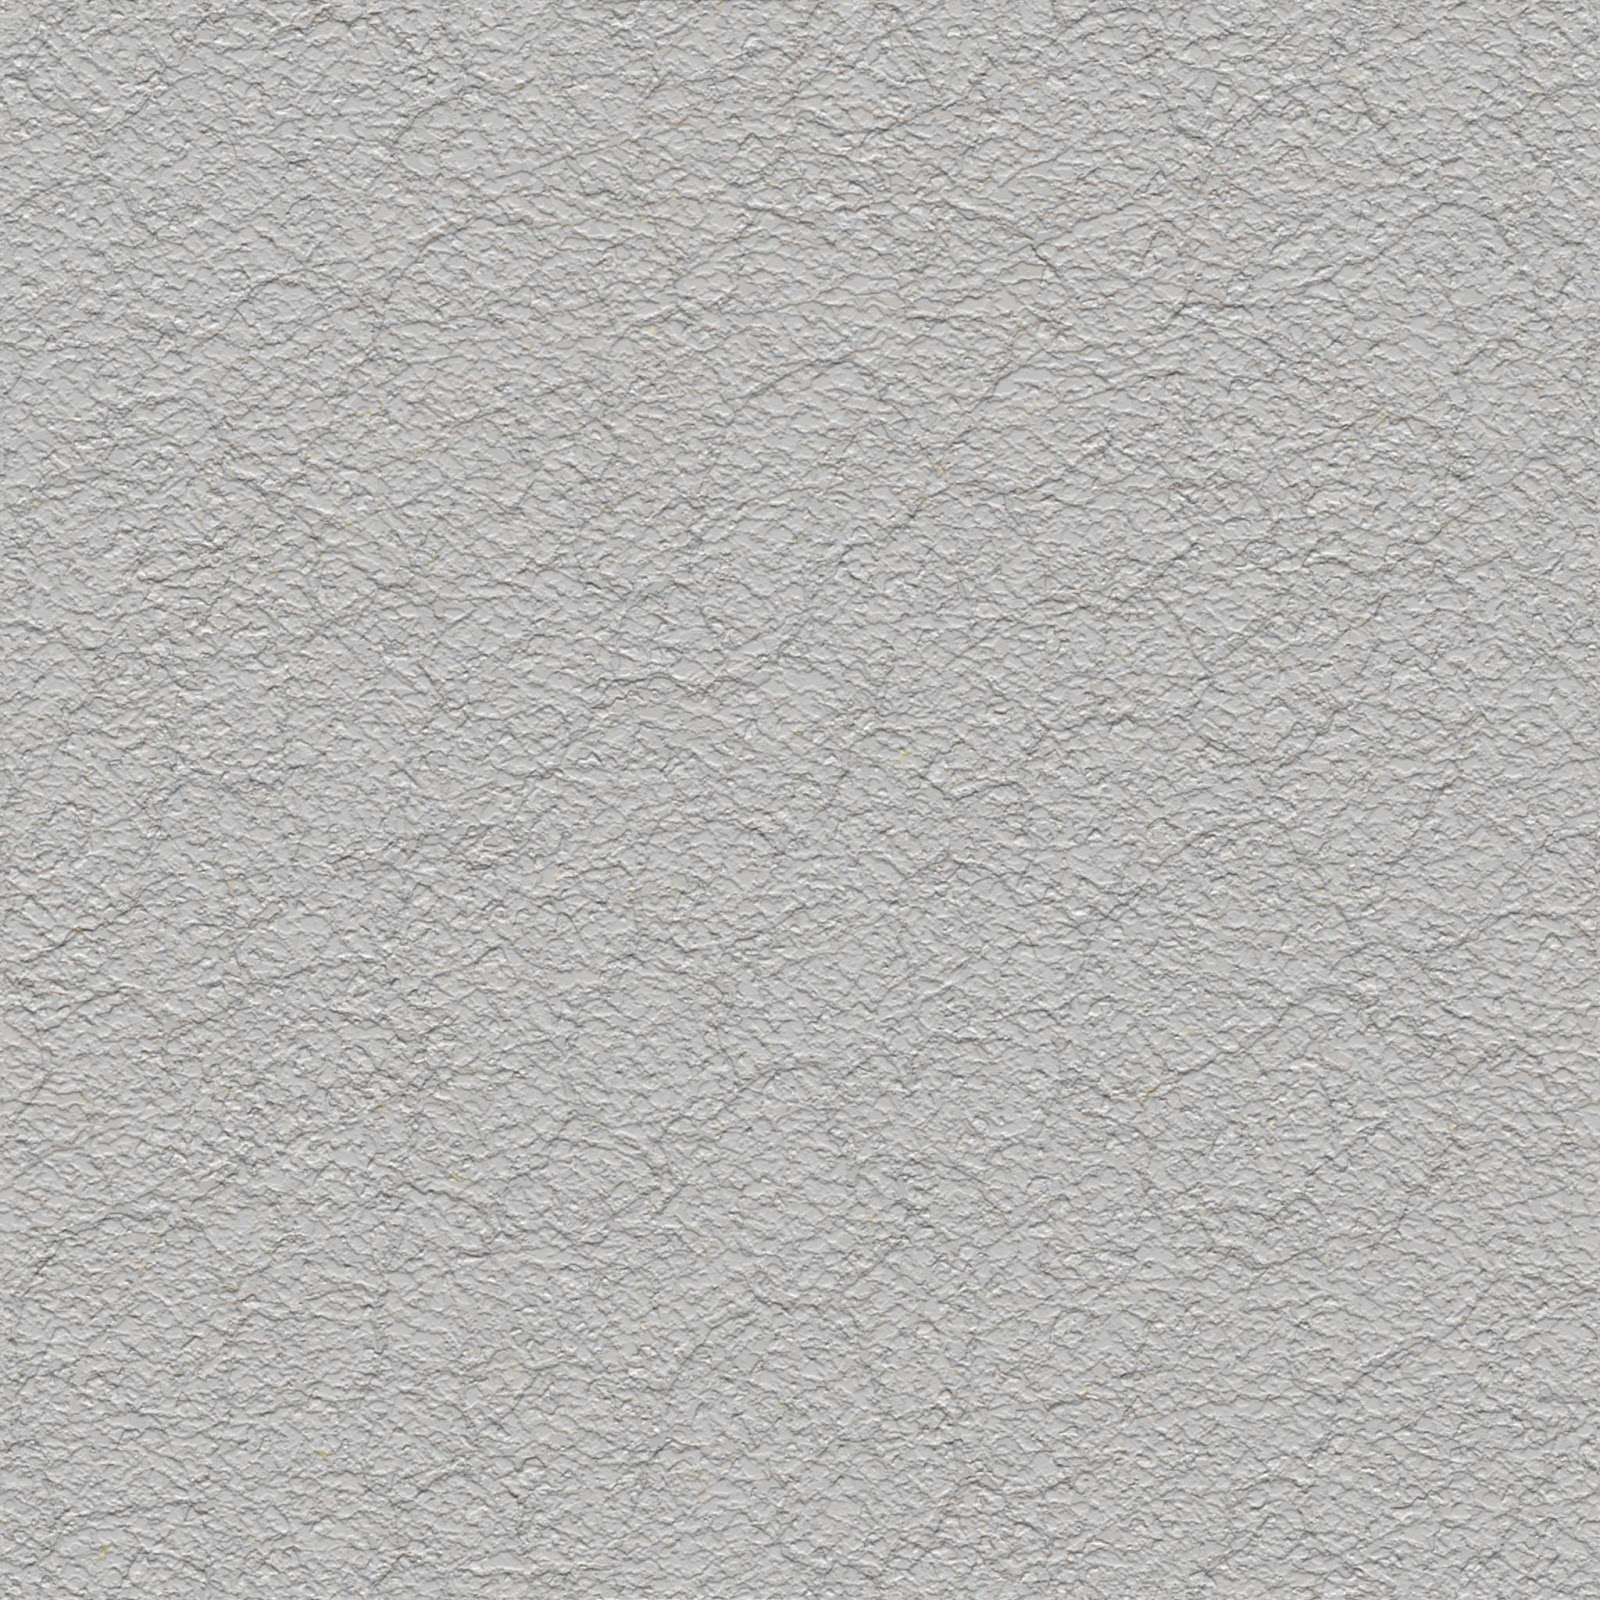 Cracked_stucco_white_paint_streaky_plaster_wall_april10_texture_seamless_tileable